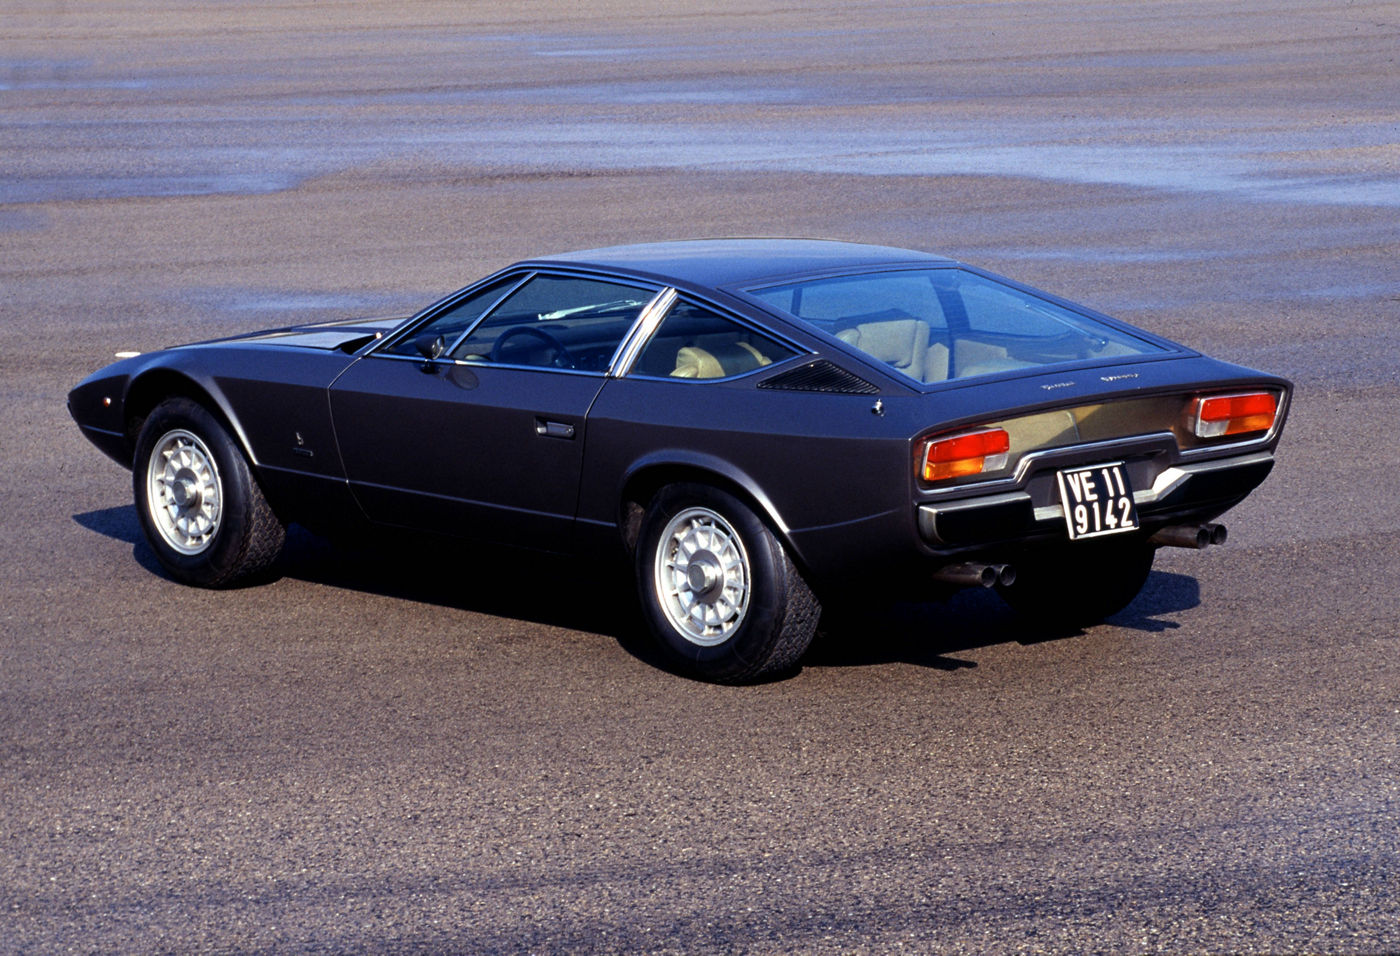 1974 Maserati Khamsin - exterior view of the classic 2-door coupe